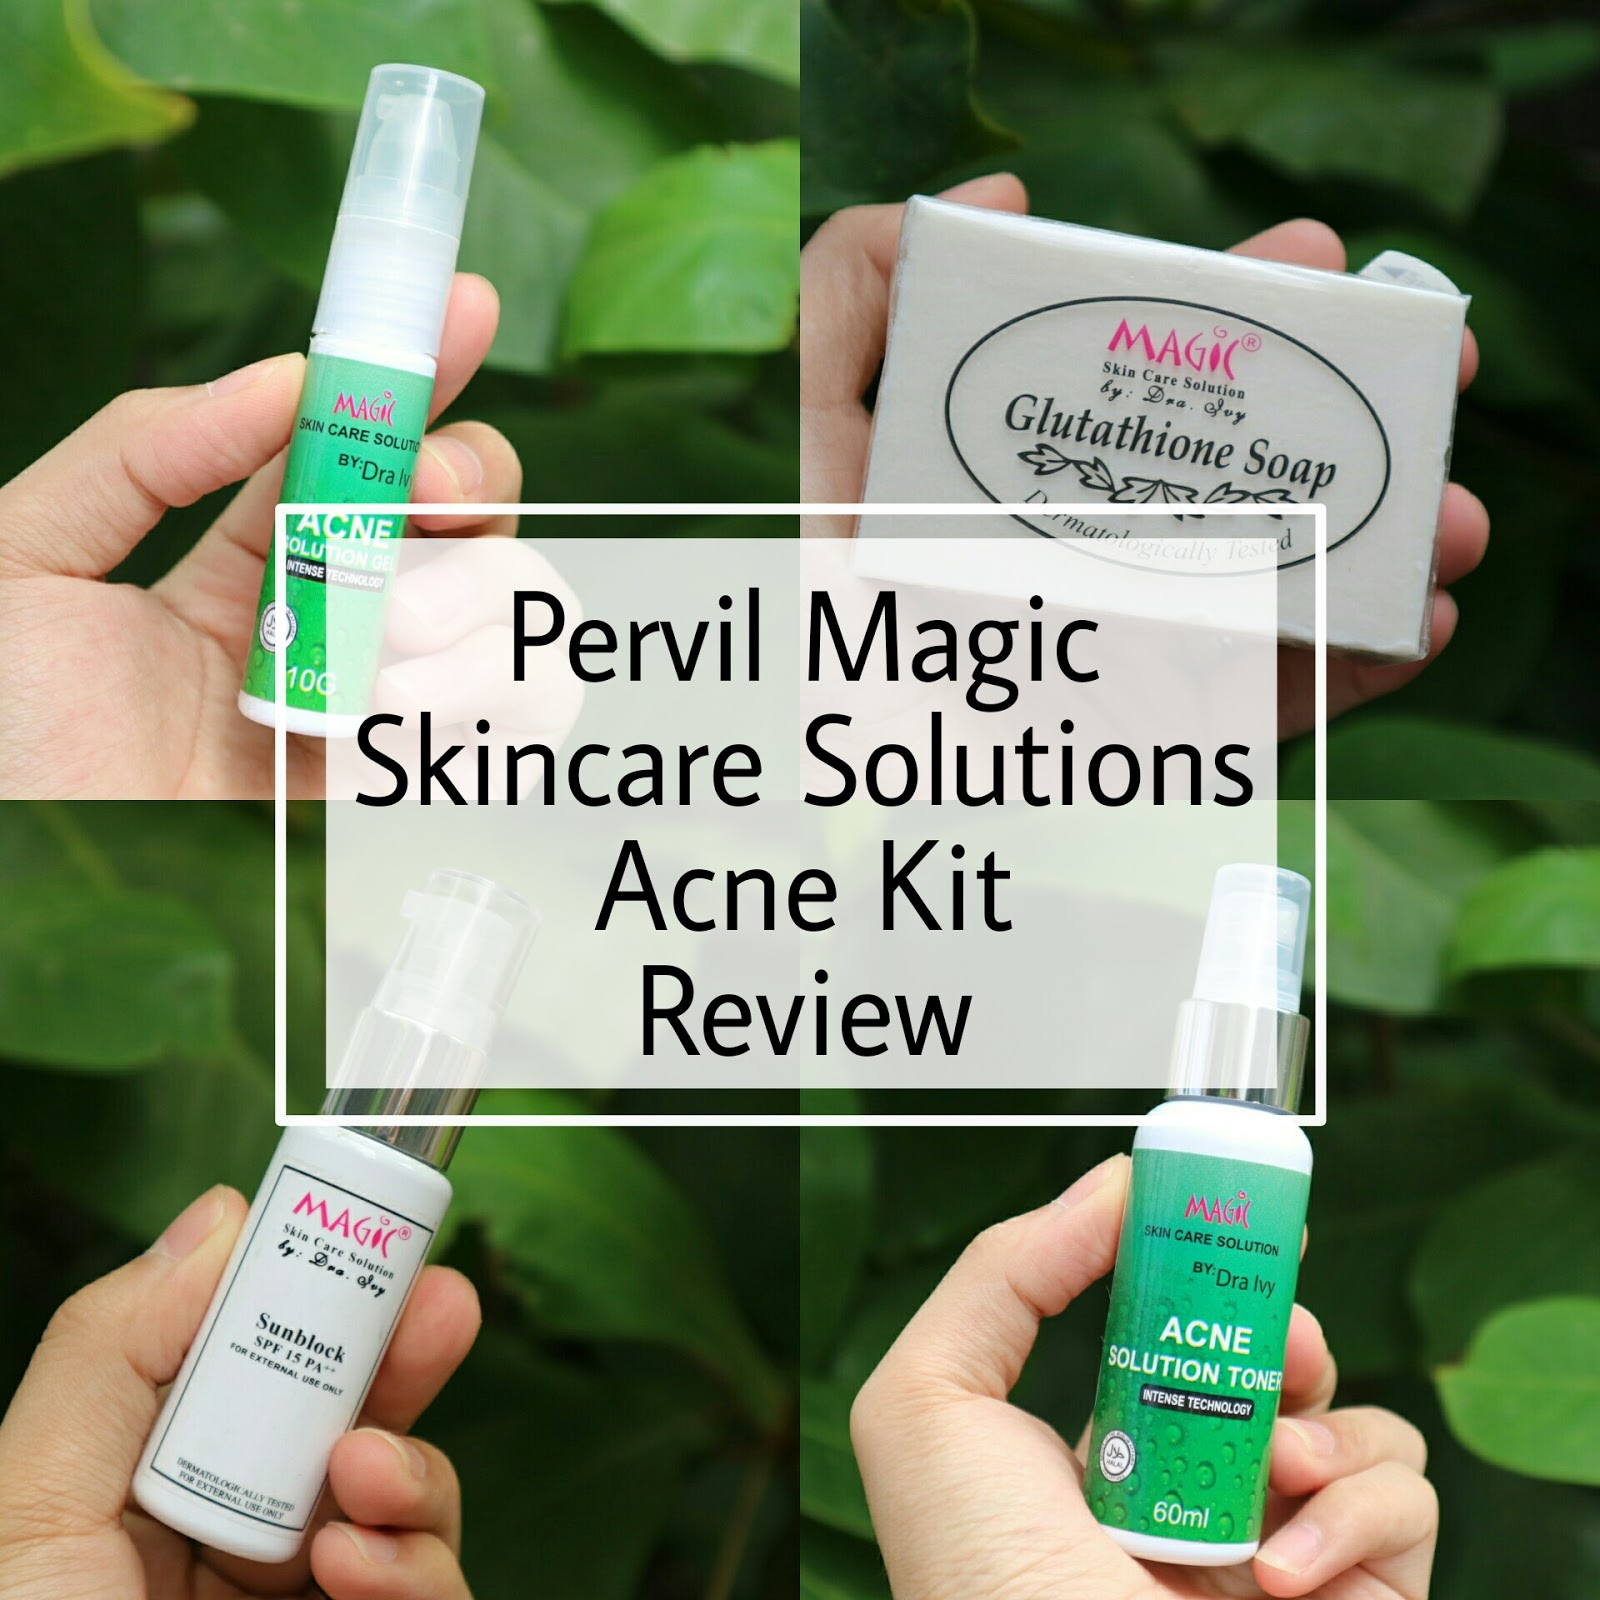 REVIEW: Pervil Magic Acne Kit by Dra  Ivy - Vanity Room